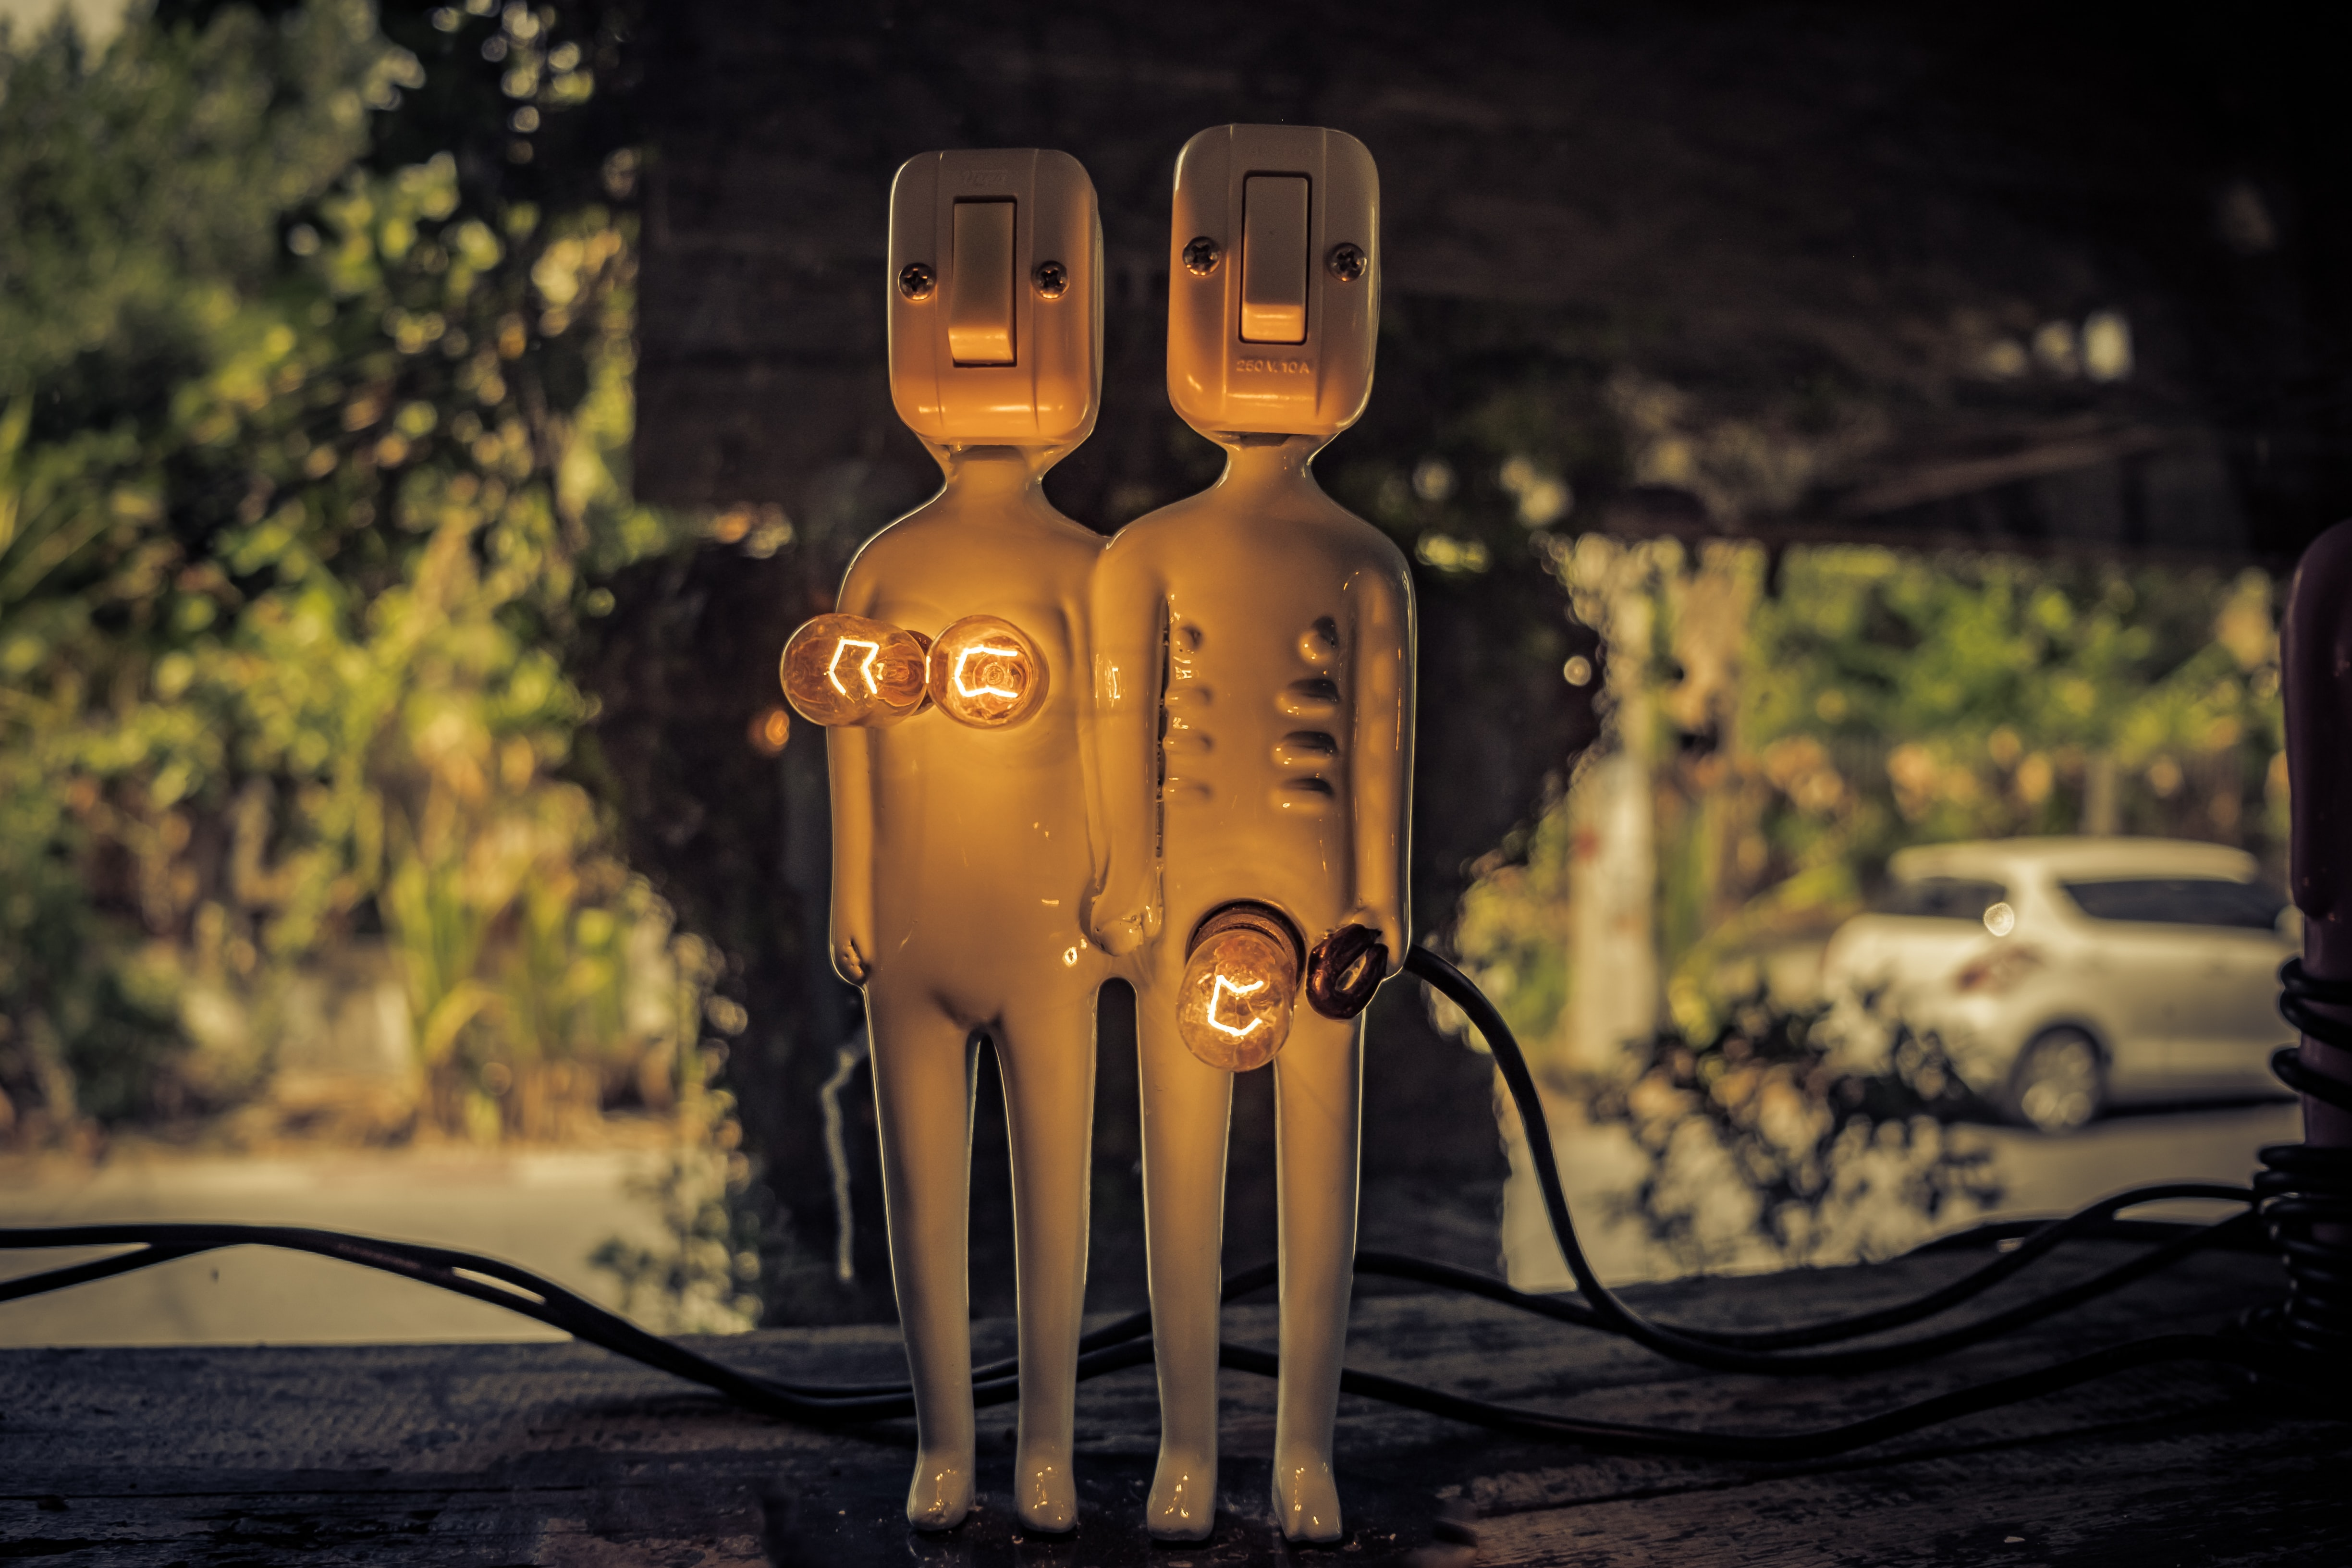 Funny sculpture of a male/female pair with electrical body parts